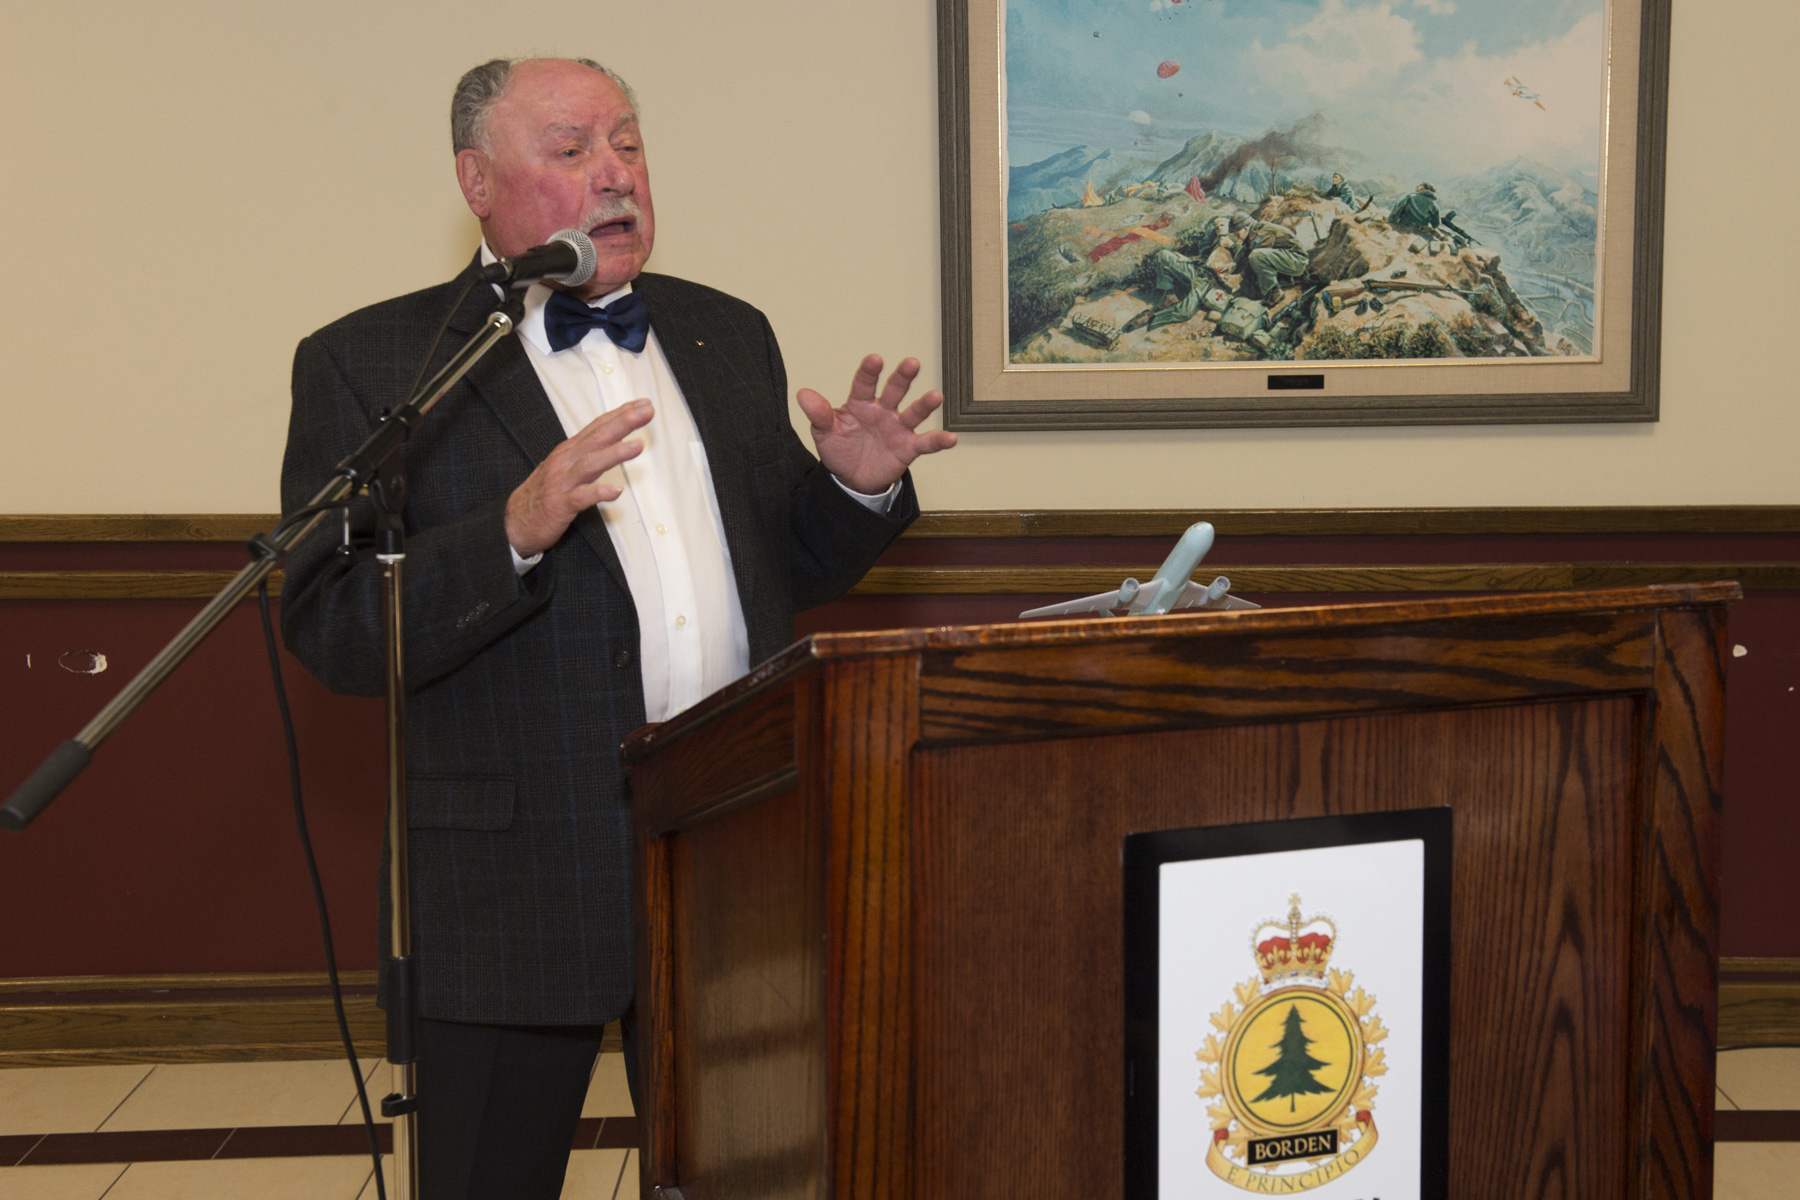 A man in a dinner jacket stands at a podium and speaks into a microphone bearing a model of a passenger aircraft. Behind him is a painting of soldiers on a hilltop during a battle.